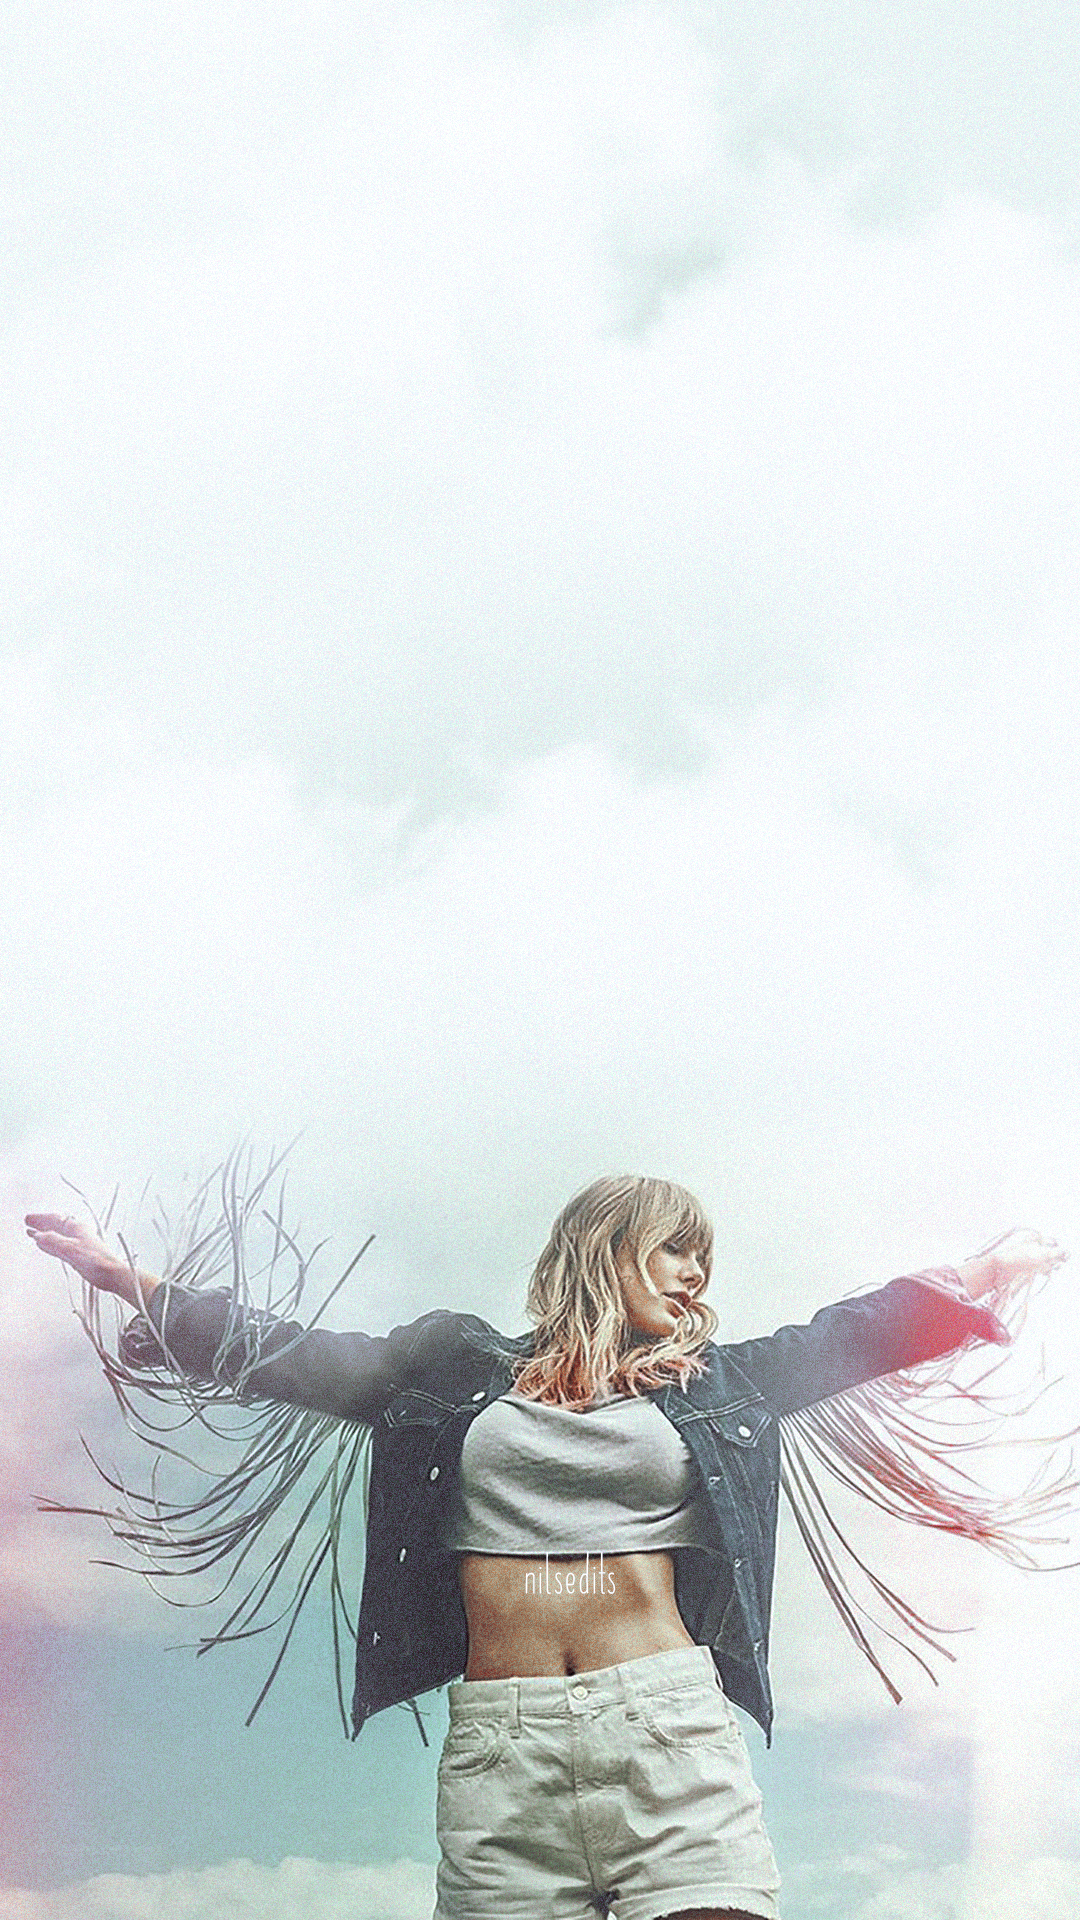 Taylor Swift Me Taylor Swift Wallpaper Taylor Swift Swift